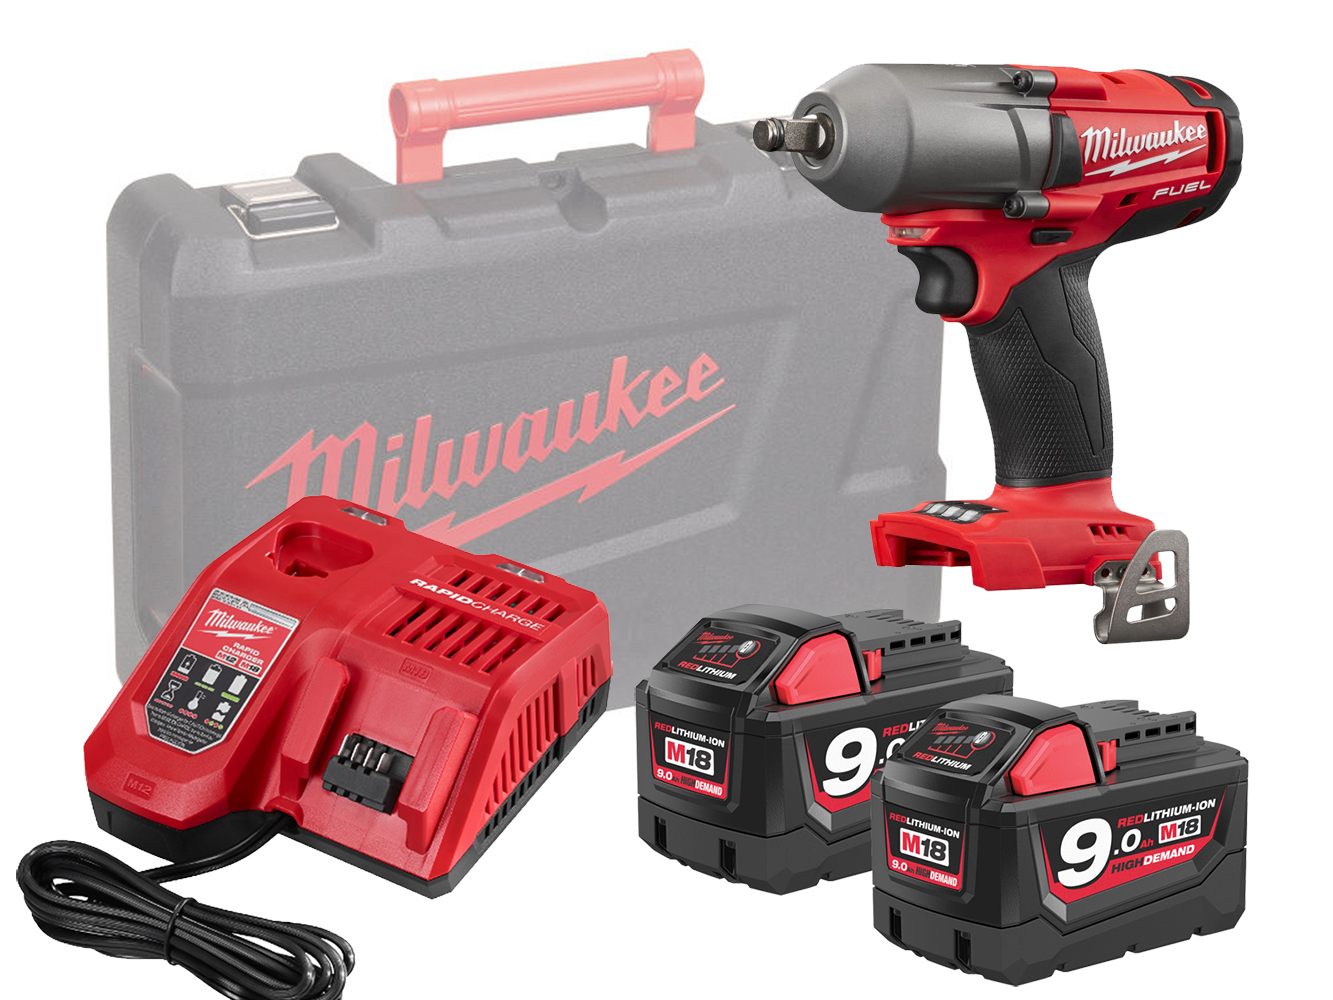 Milwaukee M18FMTIWF12 18V 1/2In Mid Torque Impact Wrench- 9.0Ah Pack